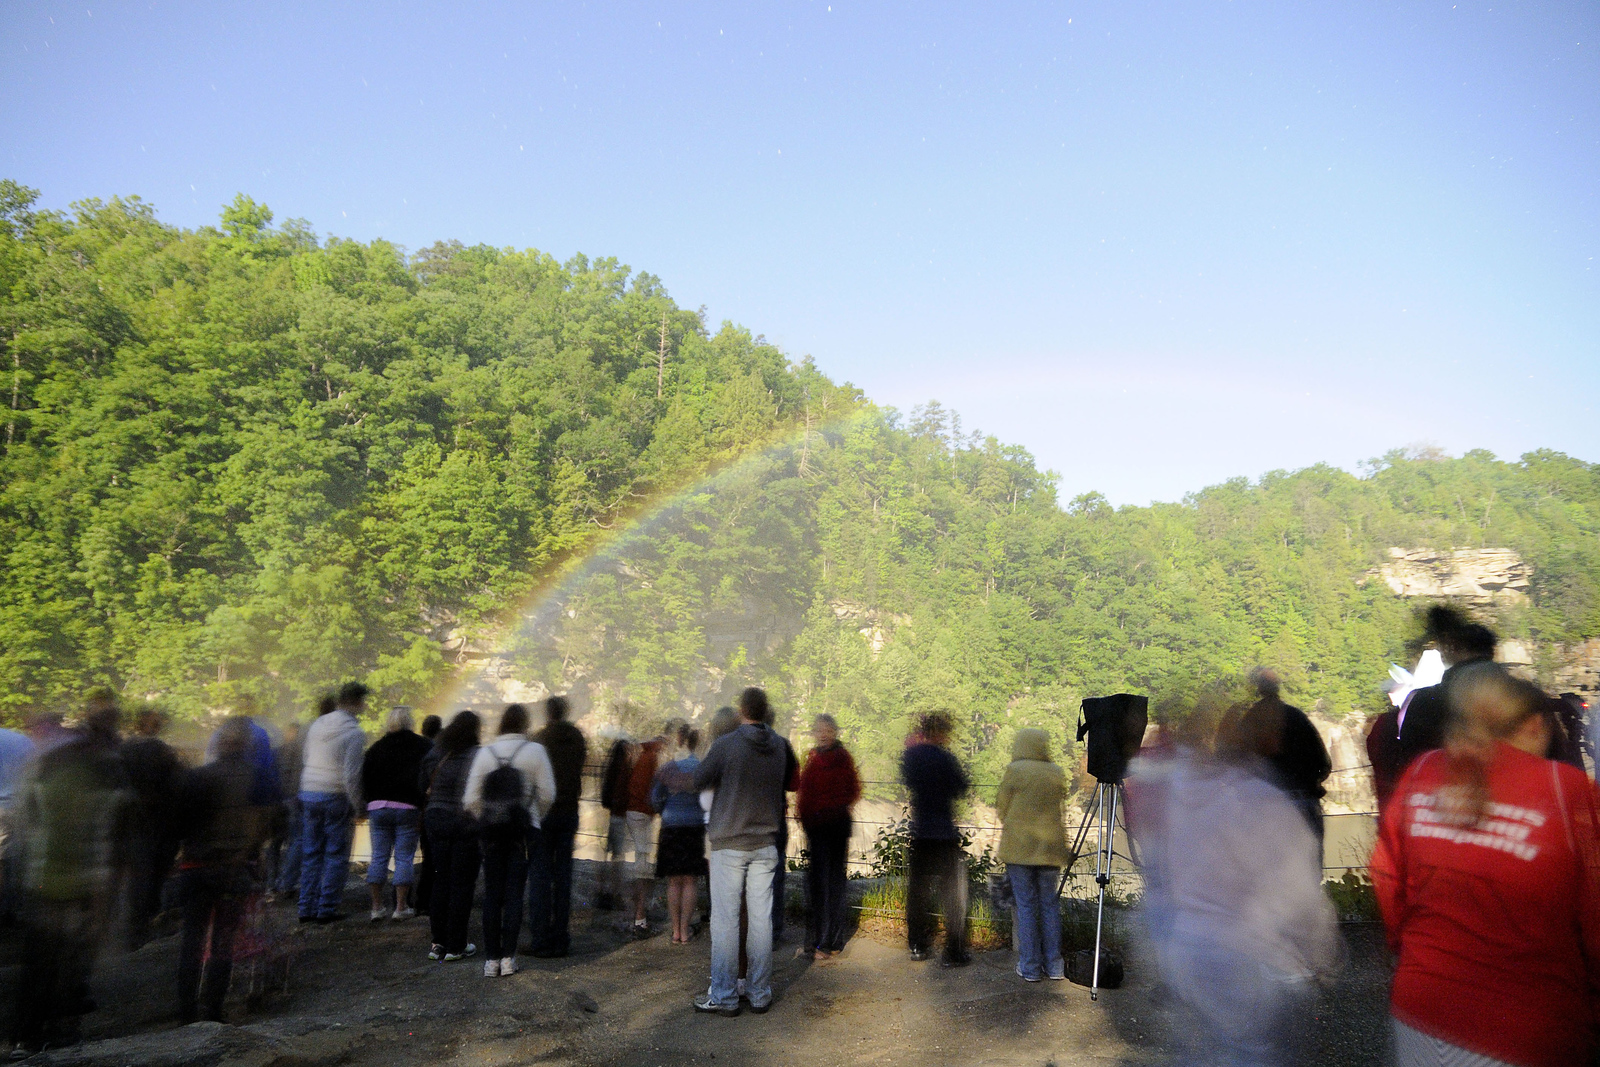 People line up along the viewing area for the Moonbow, a natural occurrence when the light from a full moon causes a rainbow to appear at night in the mist of the waterfall, at Cumberland Falls State Resort Park in Corbin, KY on Friday, May 24, 2013. Copyright 2013 Jason Barnette